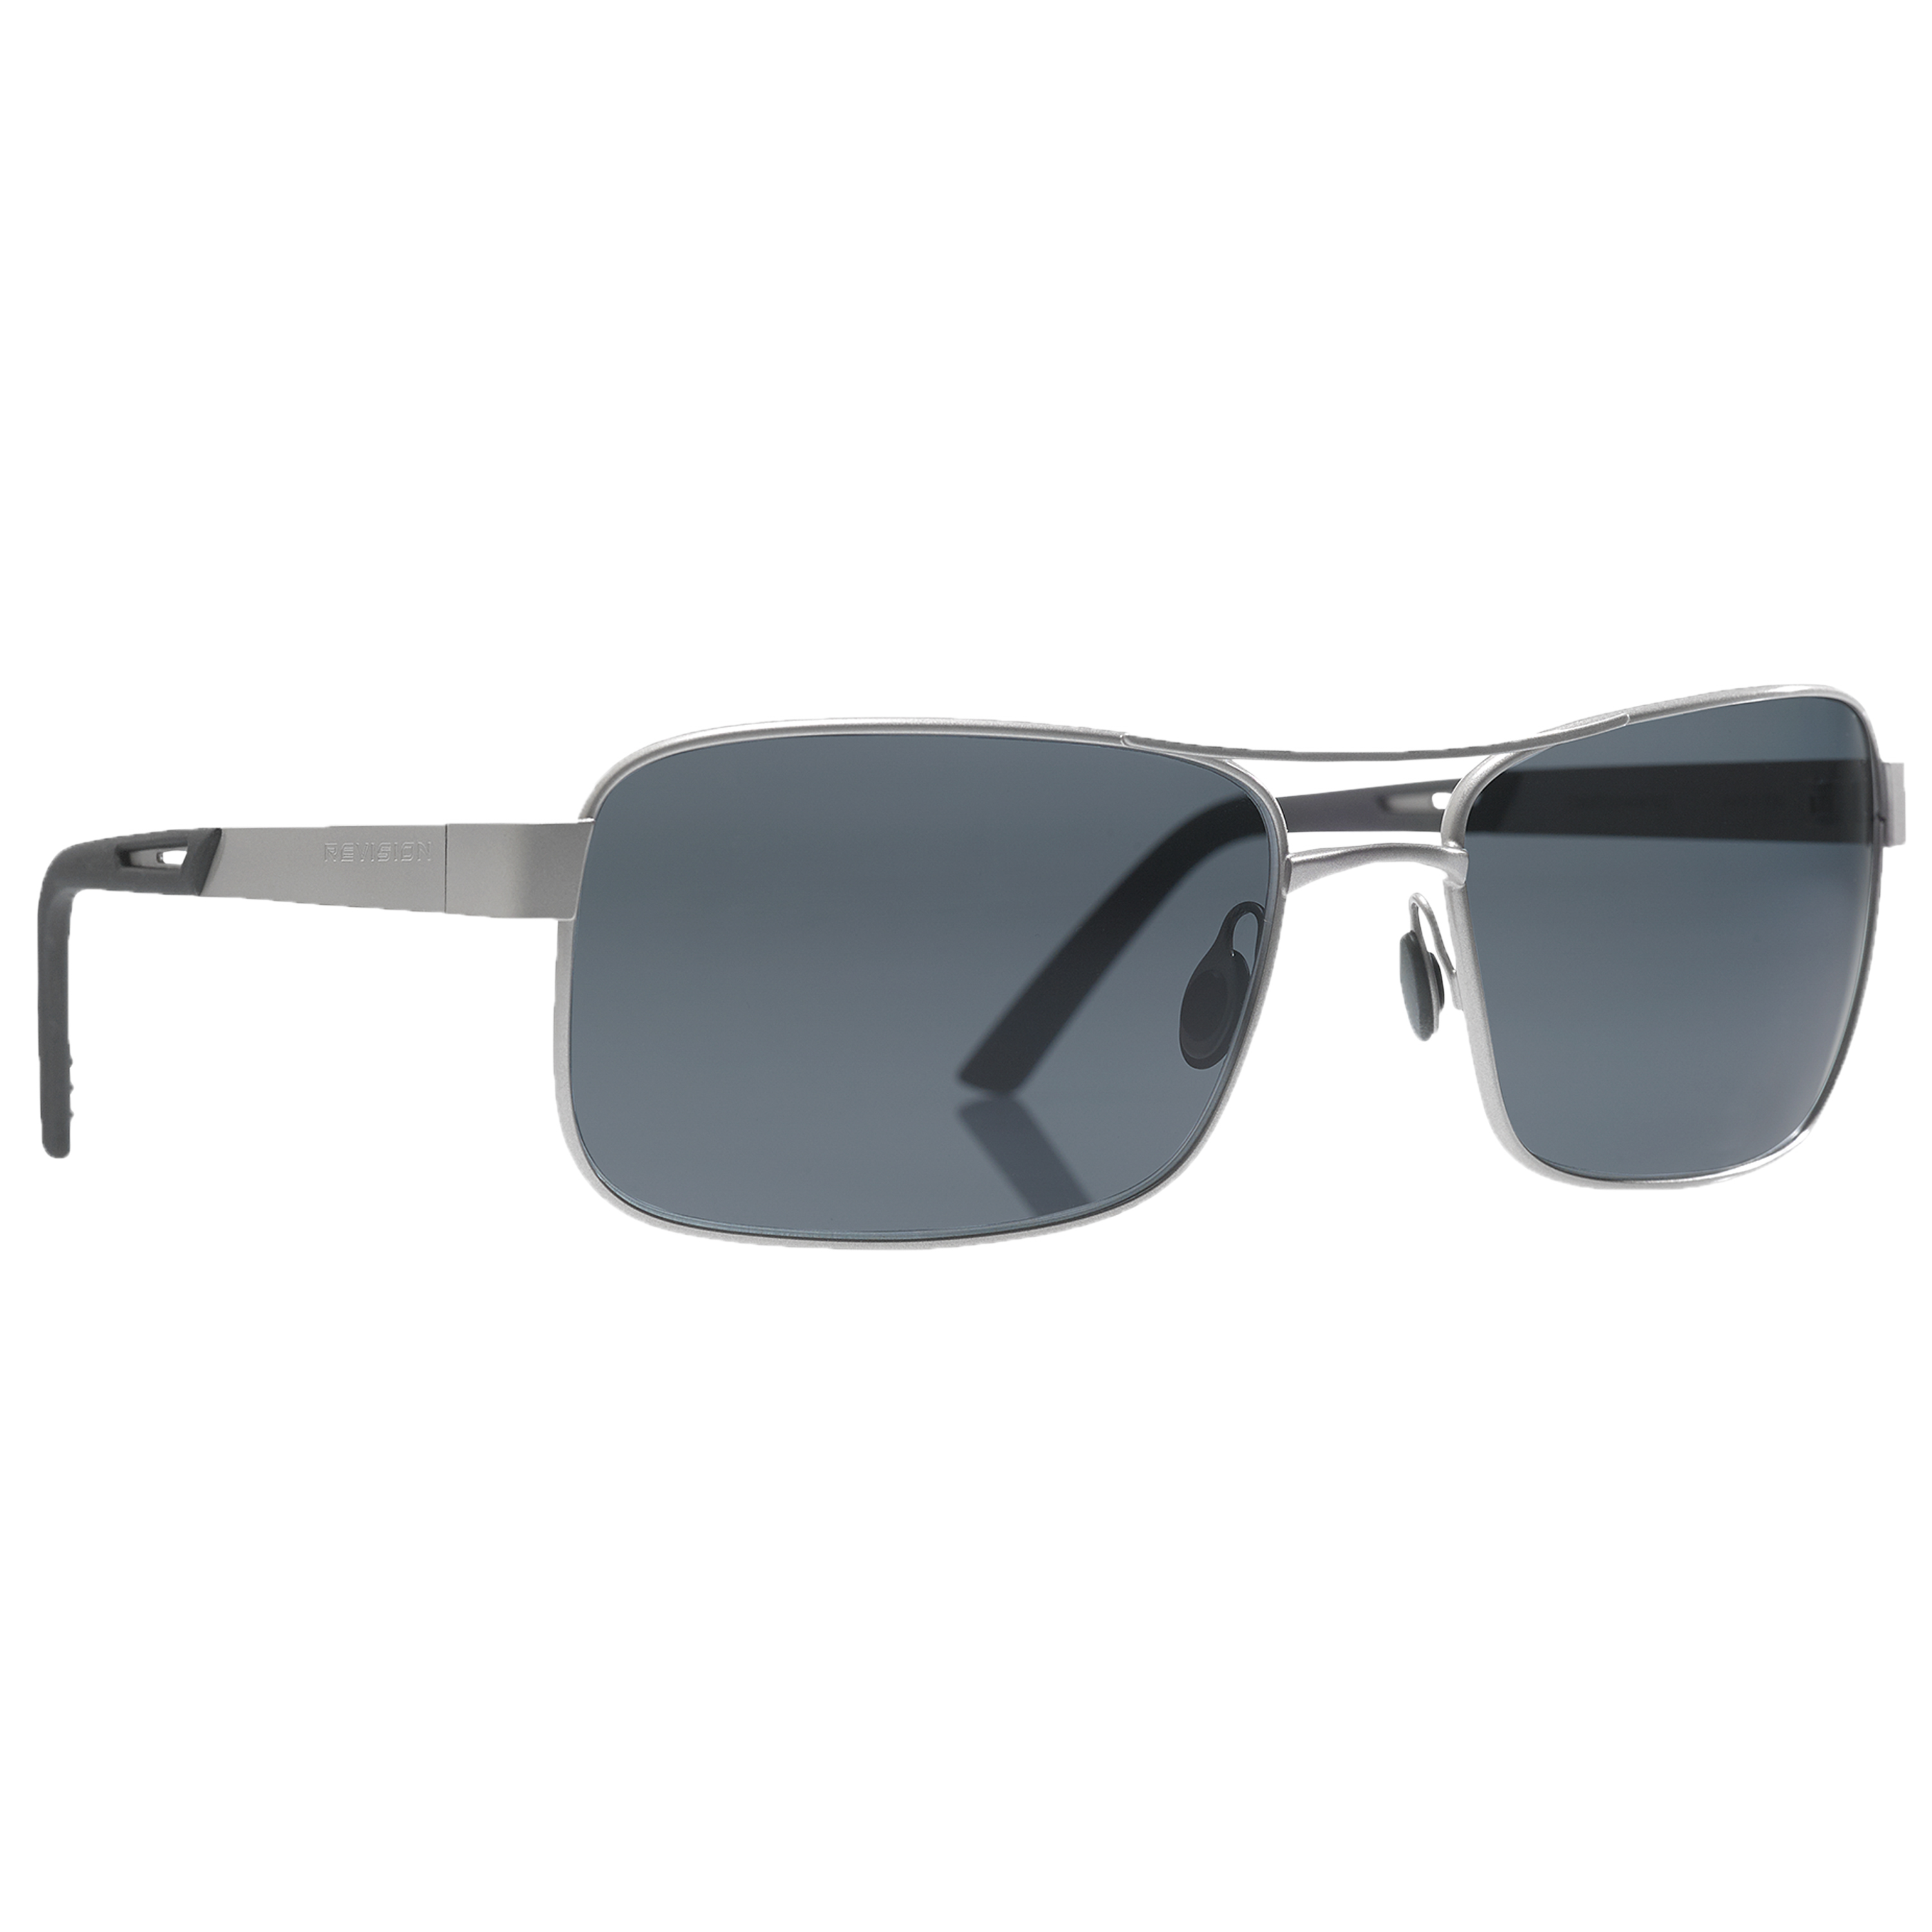 Revision Brille Deltawing smoke